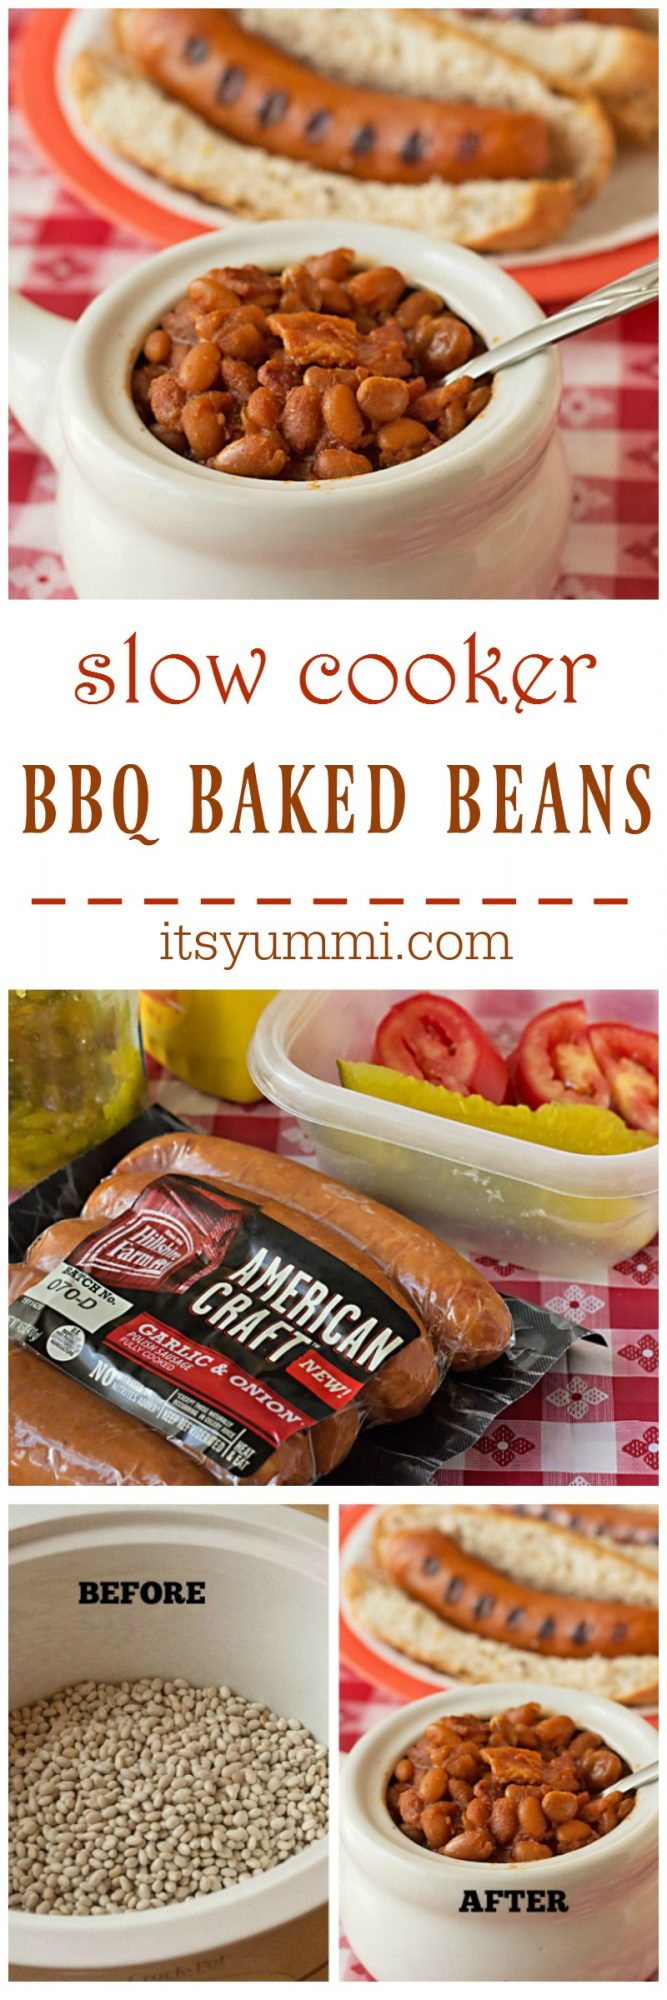 Slow Cooker BBQ Baked Beans Recipe, from itsyummi.com